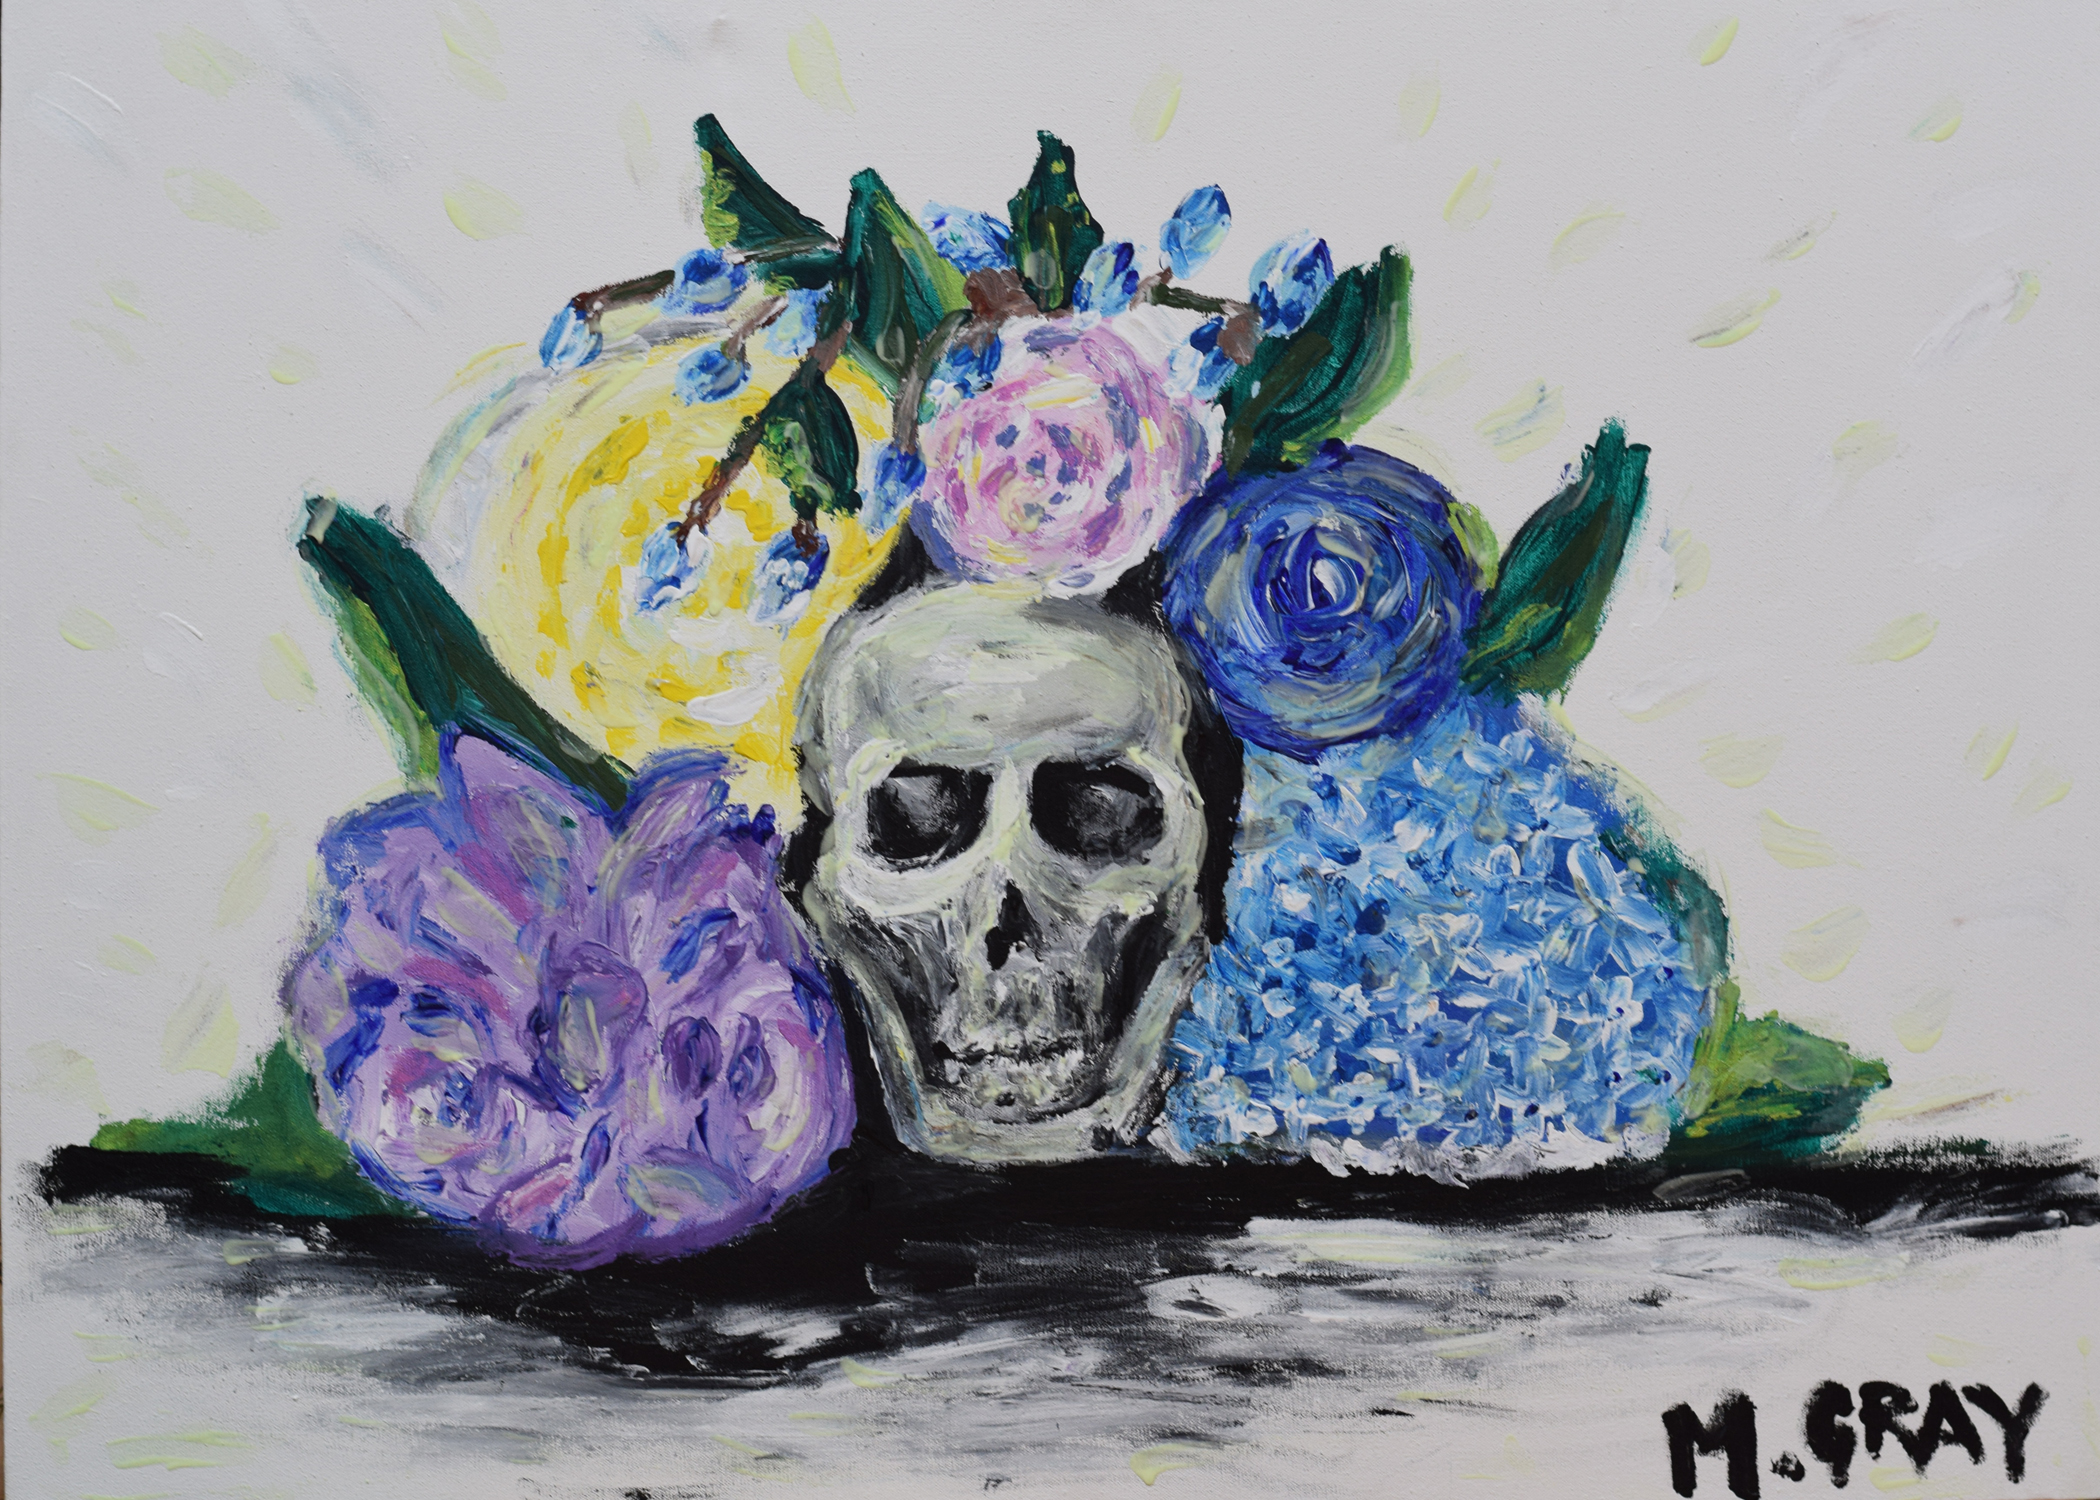 Acrylic painting - finger painted 38.5 in. x 28.5 in.